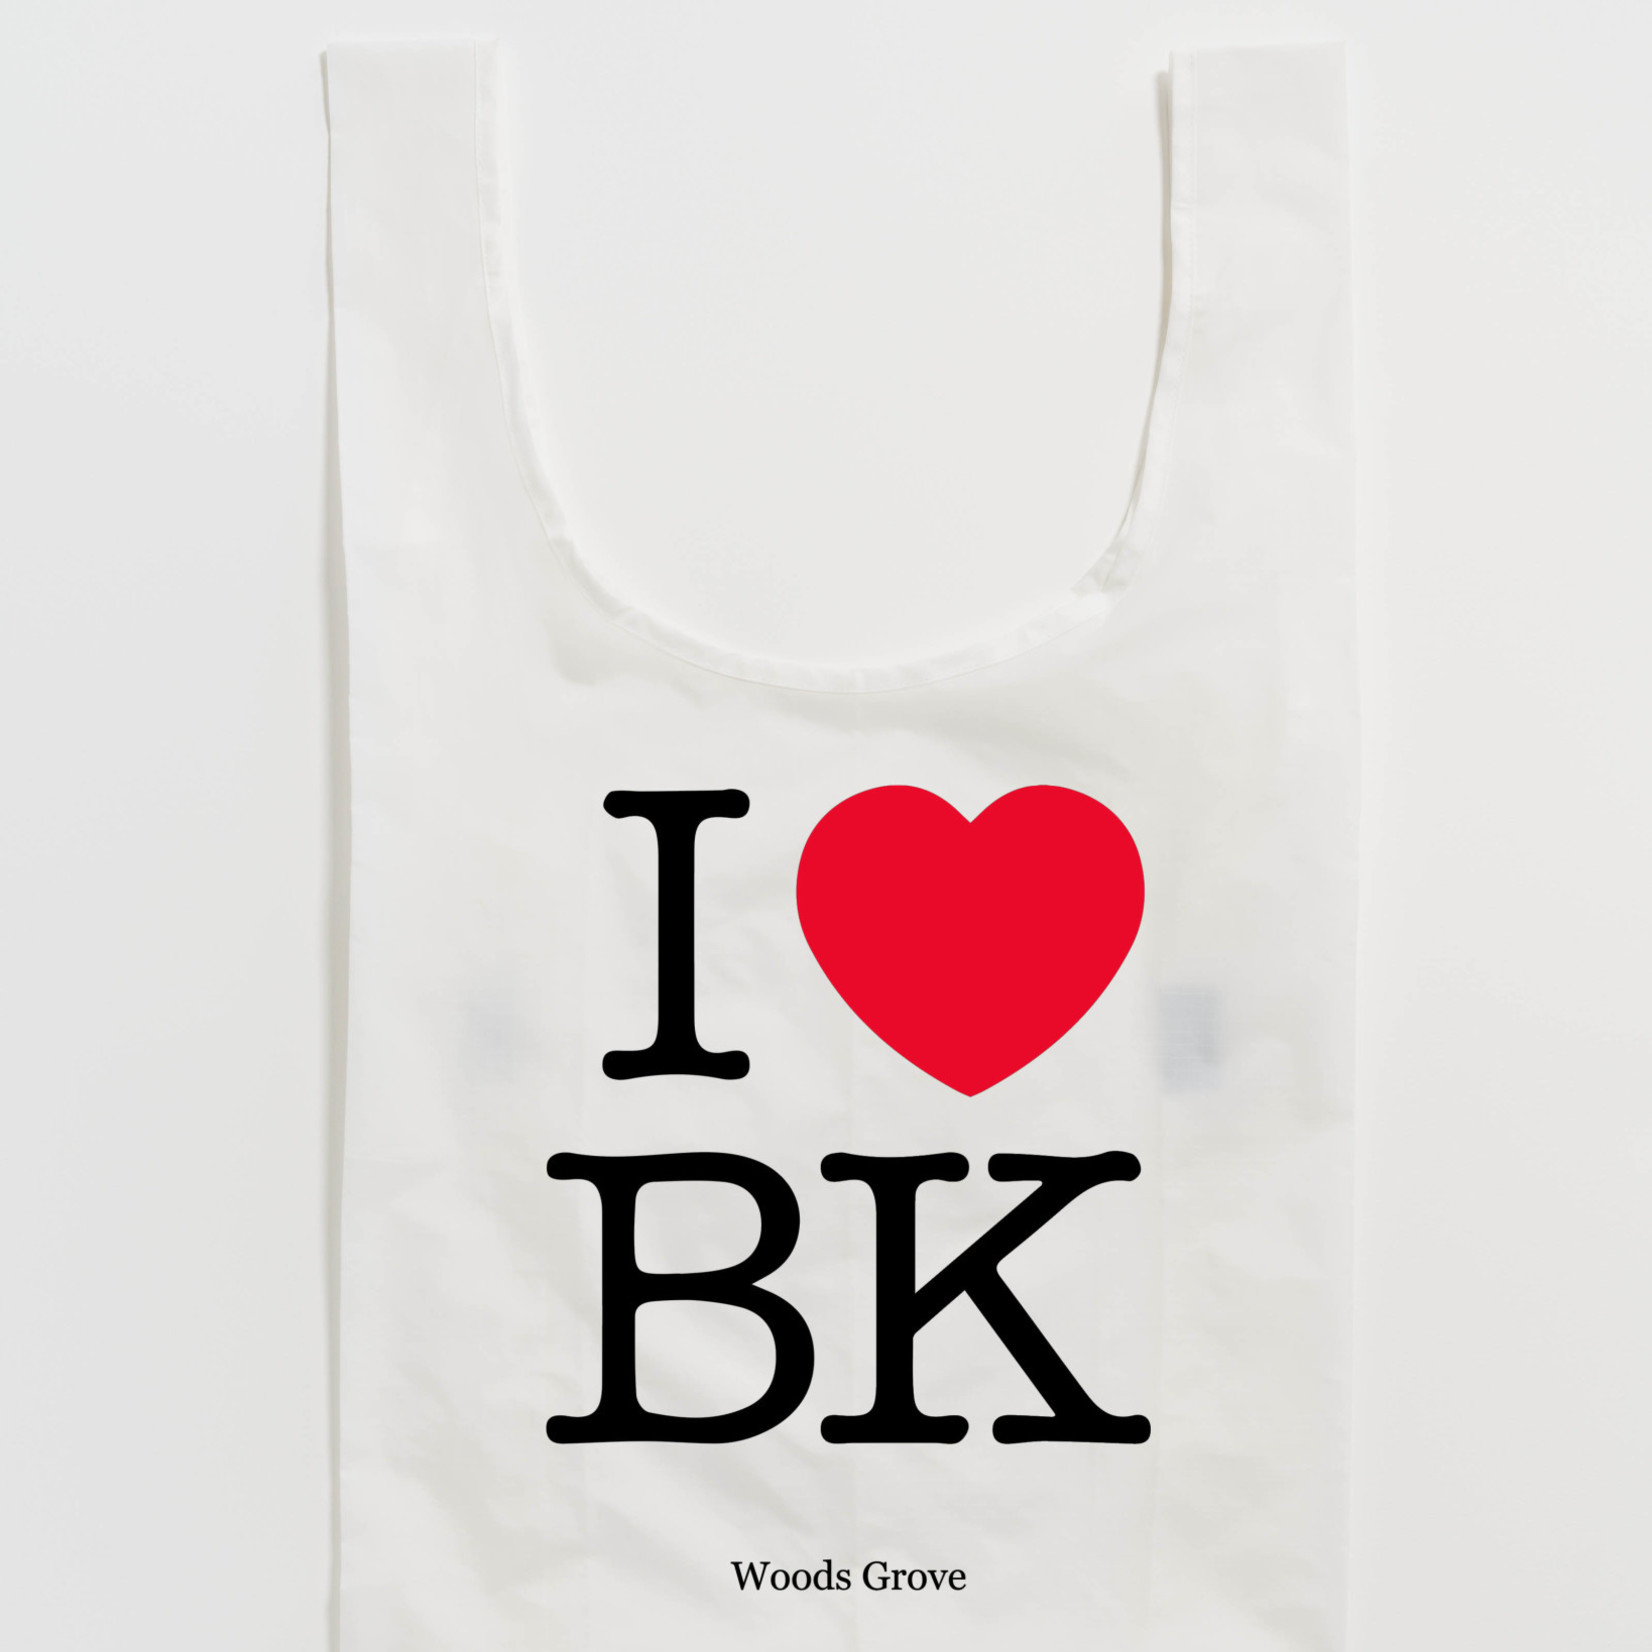 Woods Grove Reusable Bag Standard - I Love BK Exclusively by Baggu for Woods Grove - - More Options Available